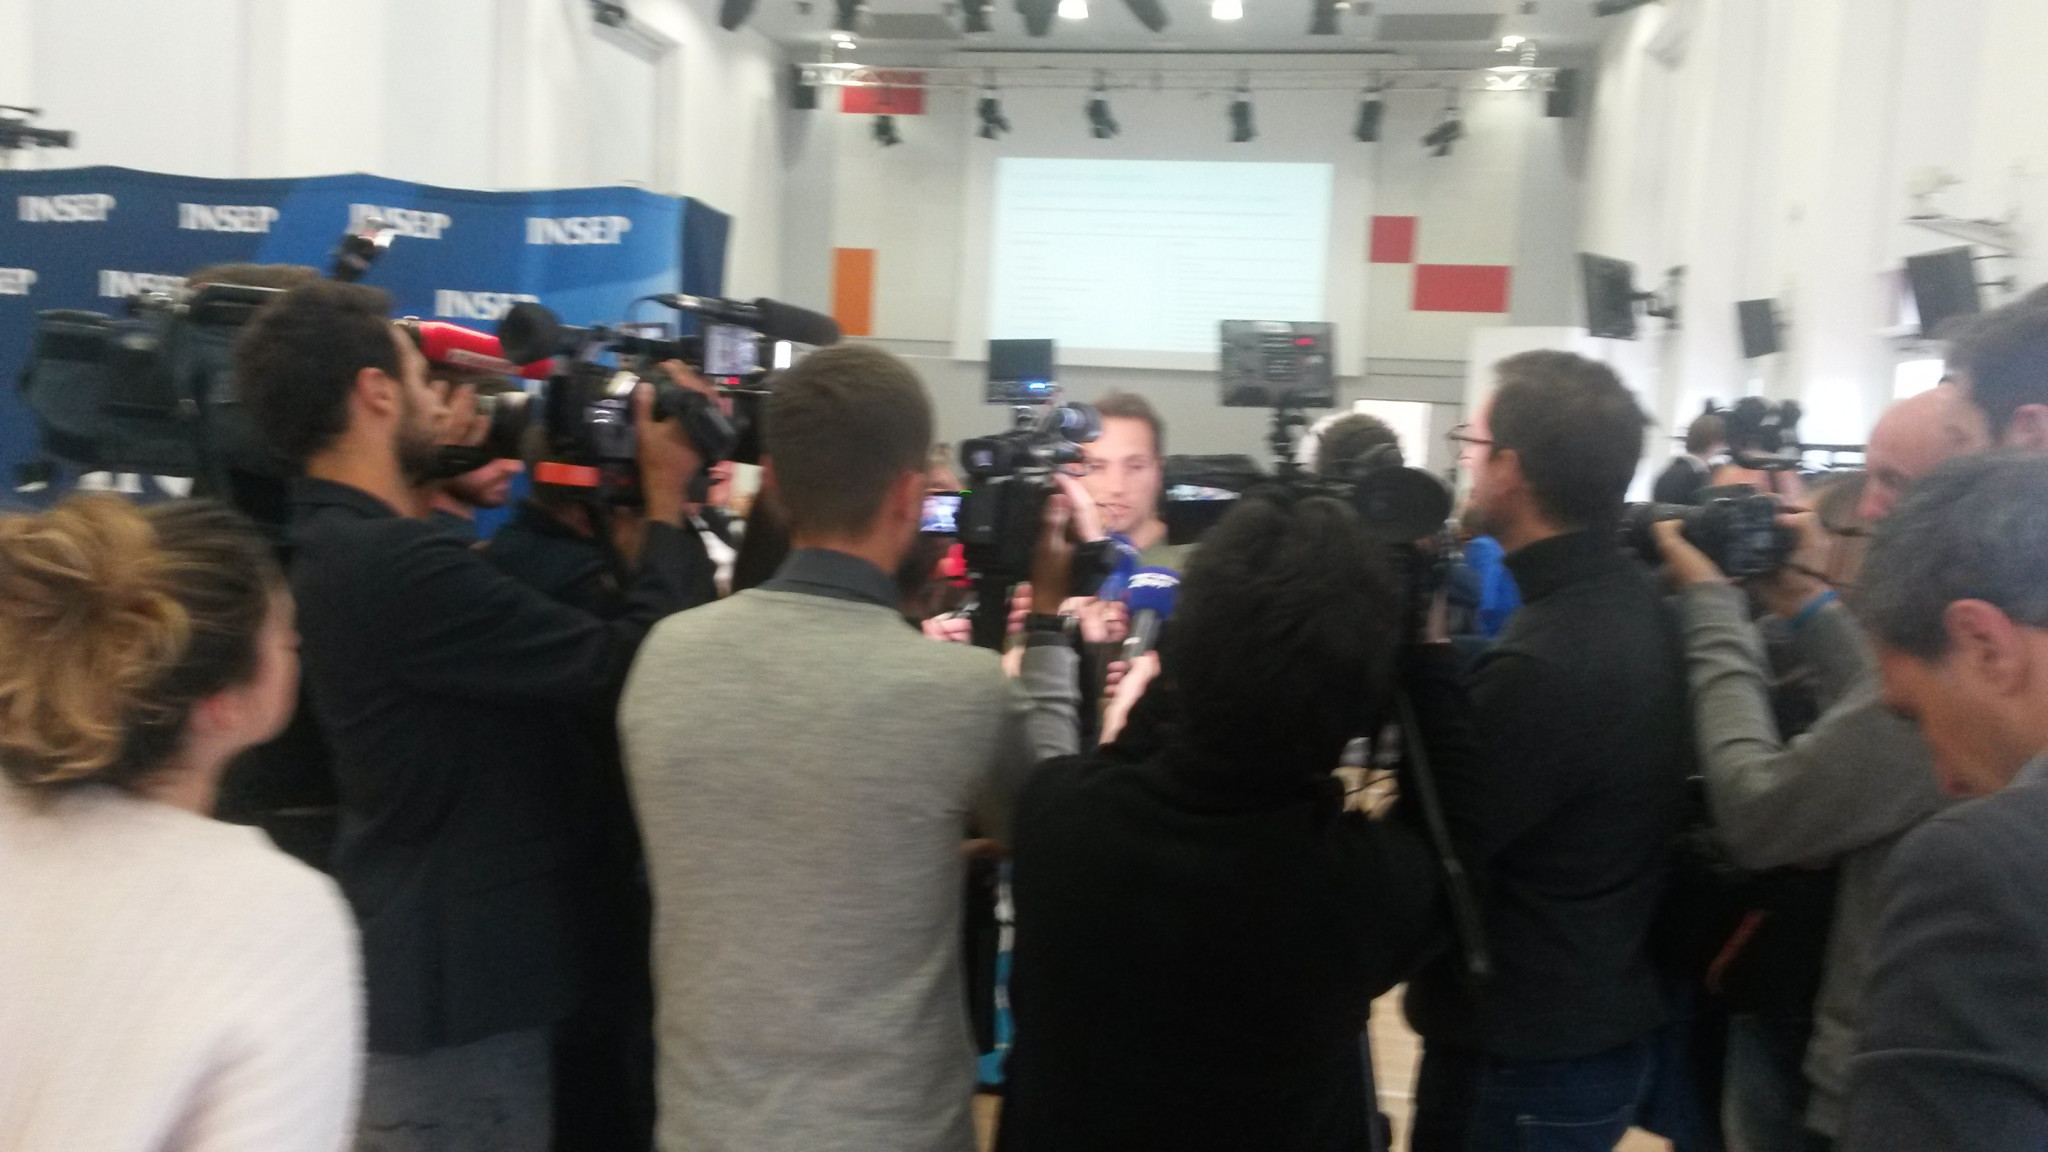 Renaud Lavillenie faces the press at the Paris 2024 consultation at INSEP in Paris today ©ITG